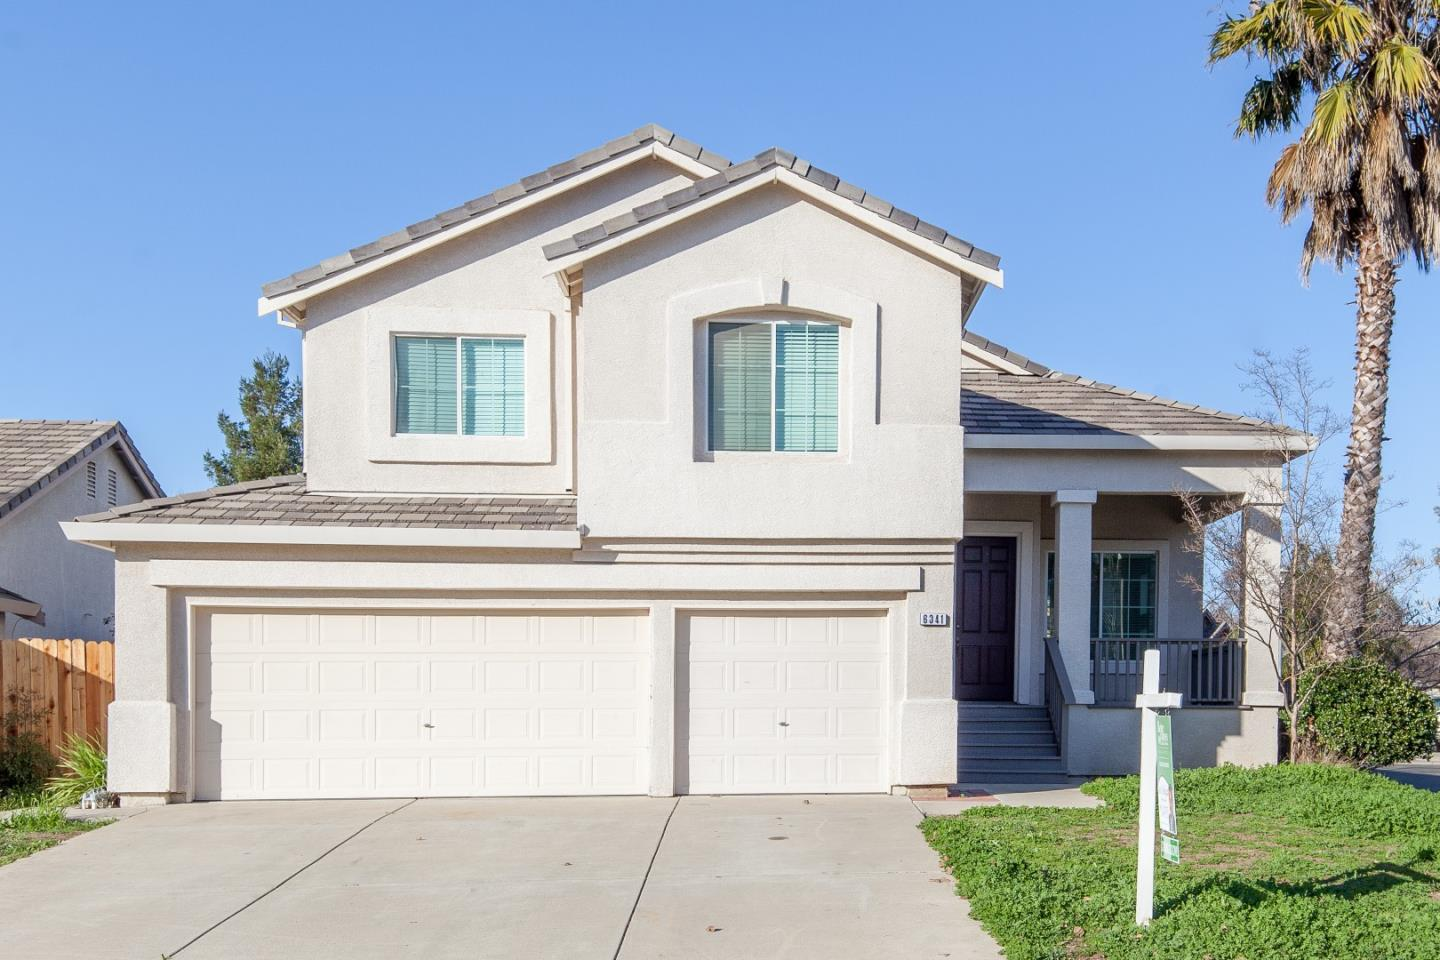 Single Family Home for Sale at 6341 Chesterbrook Drive 6341 Chesterbrook Drive Elk Grove, California 95758 United States